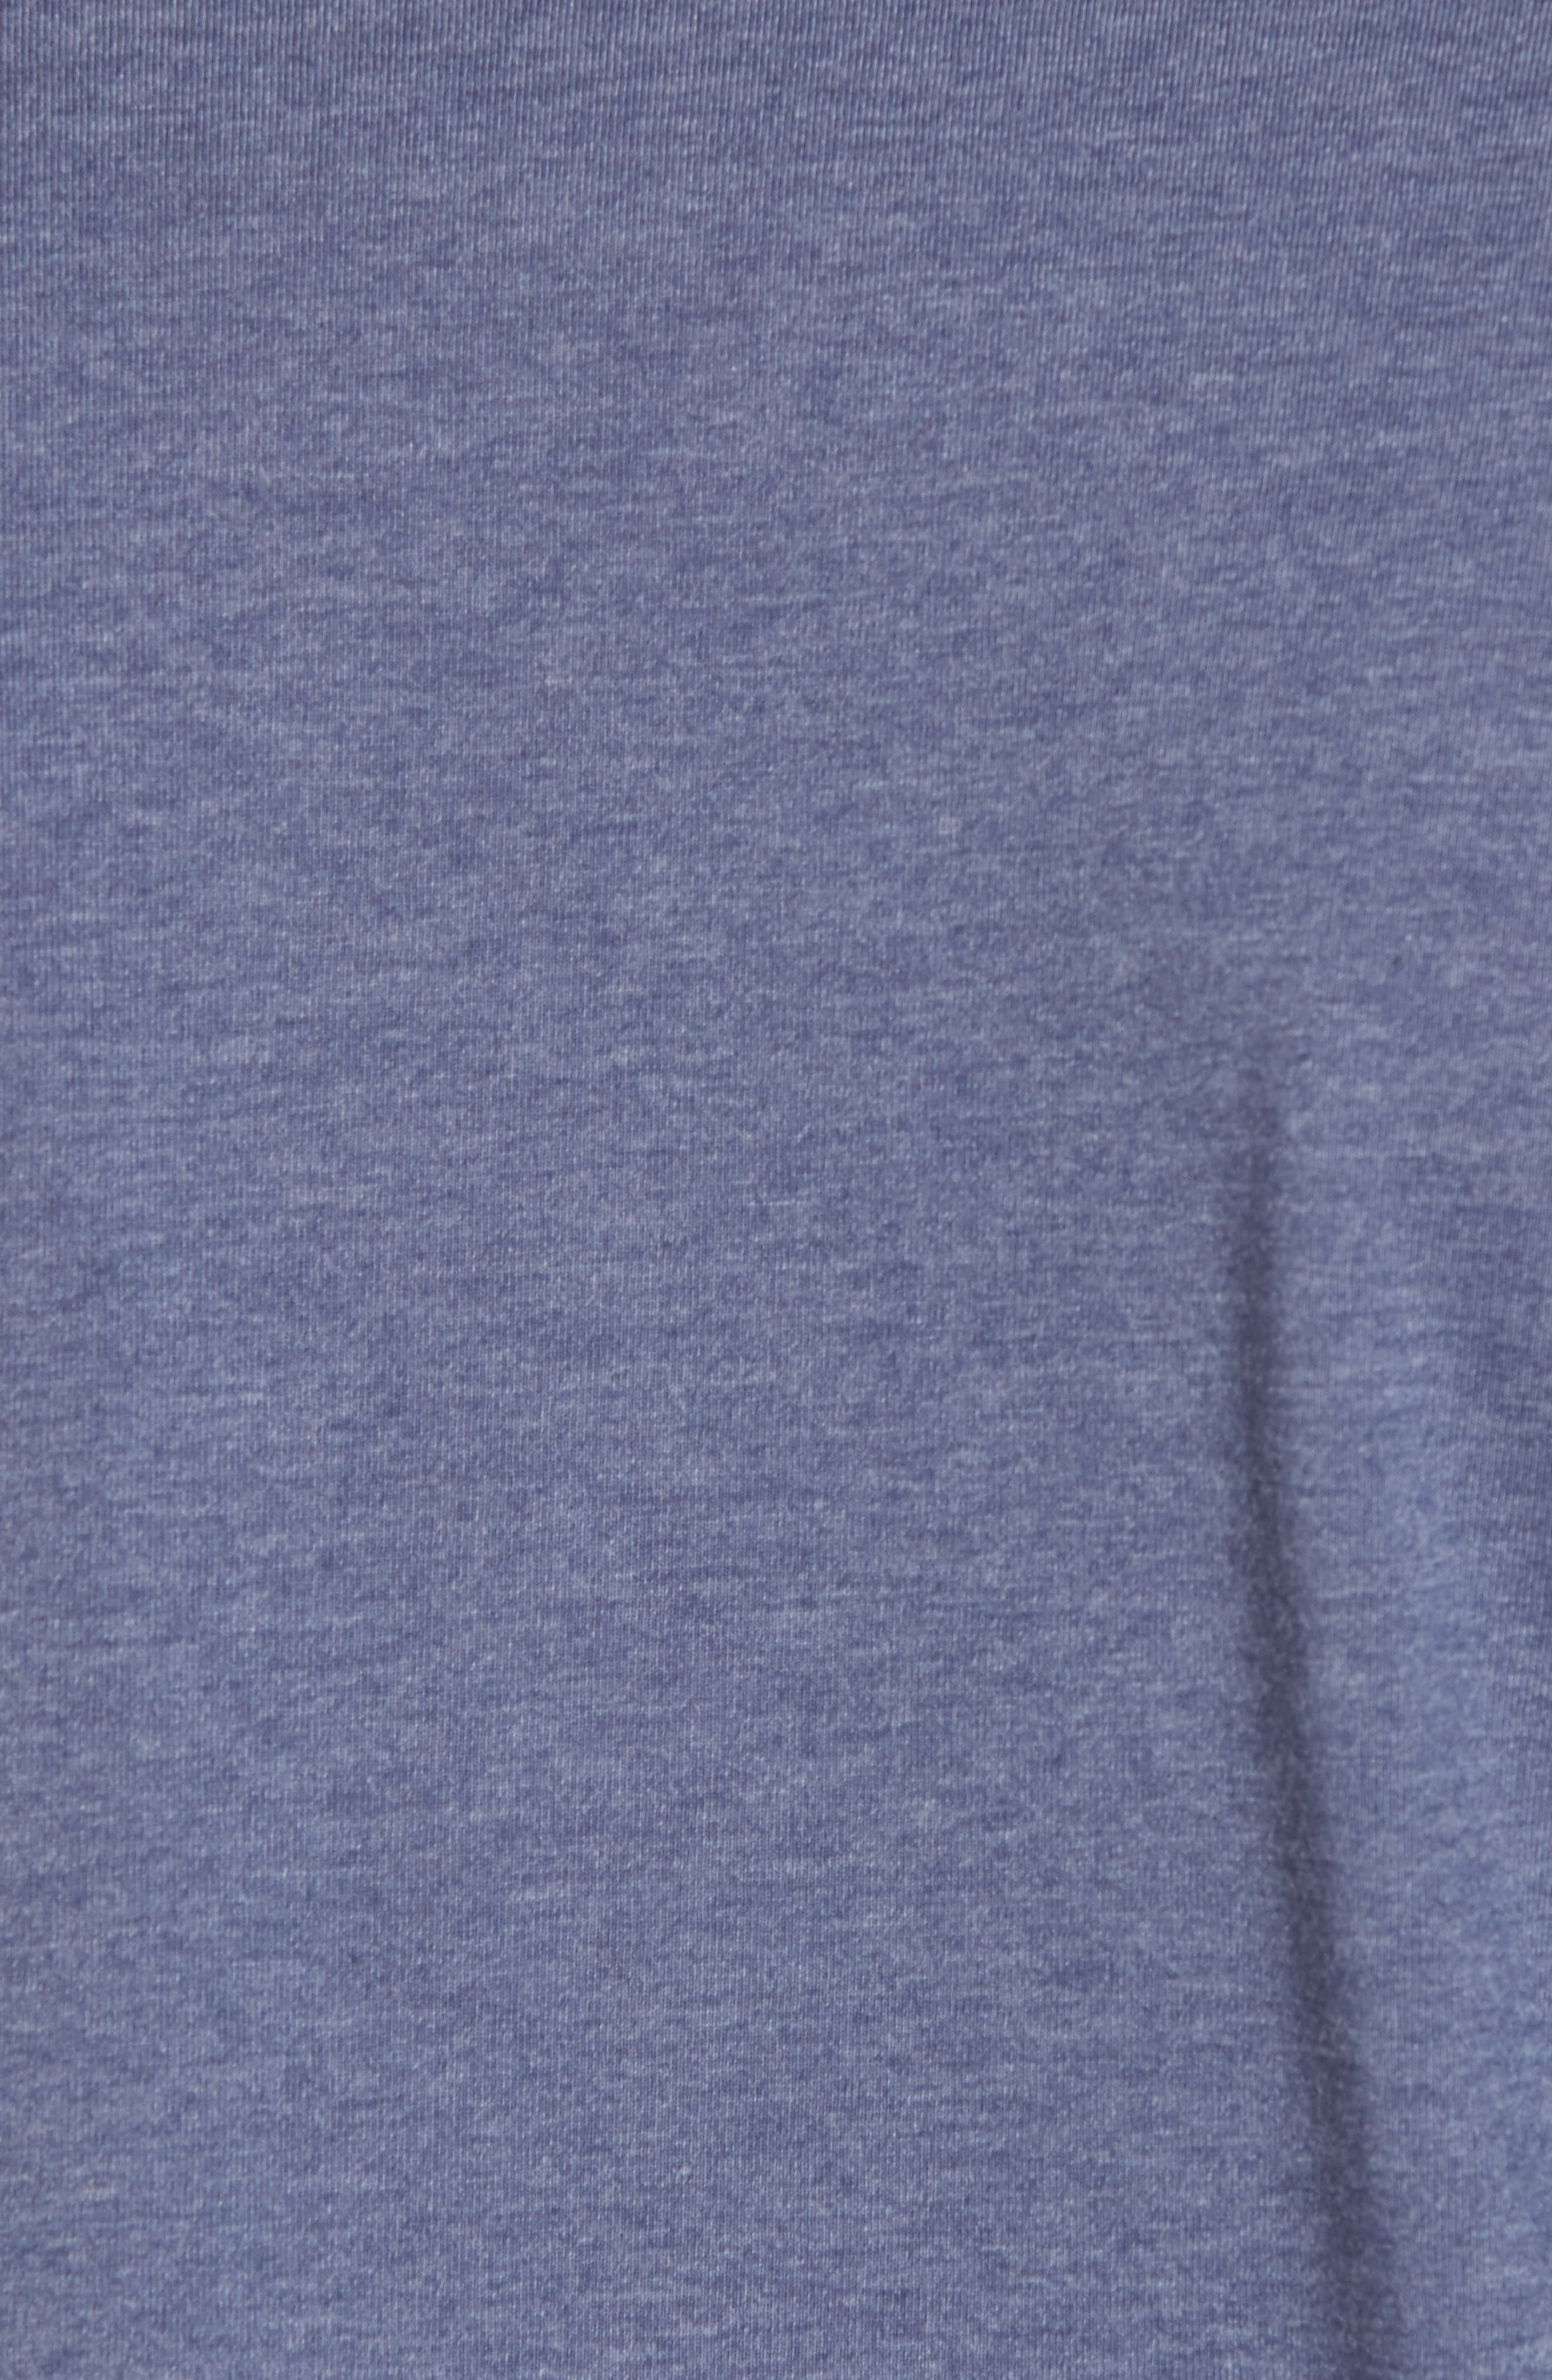 B-Stern Graphic T-Shirt,                             Alternate thumbnail 5, color,                             Heather Blue Nights